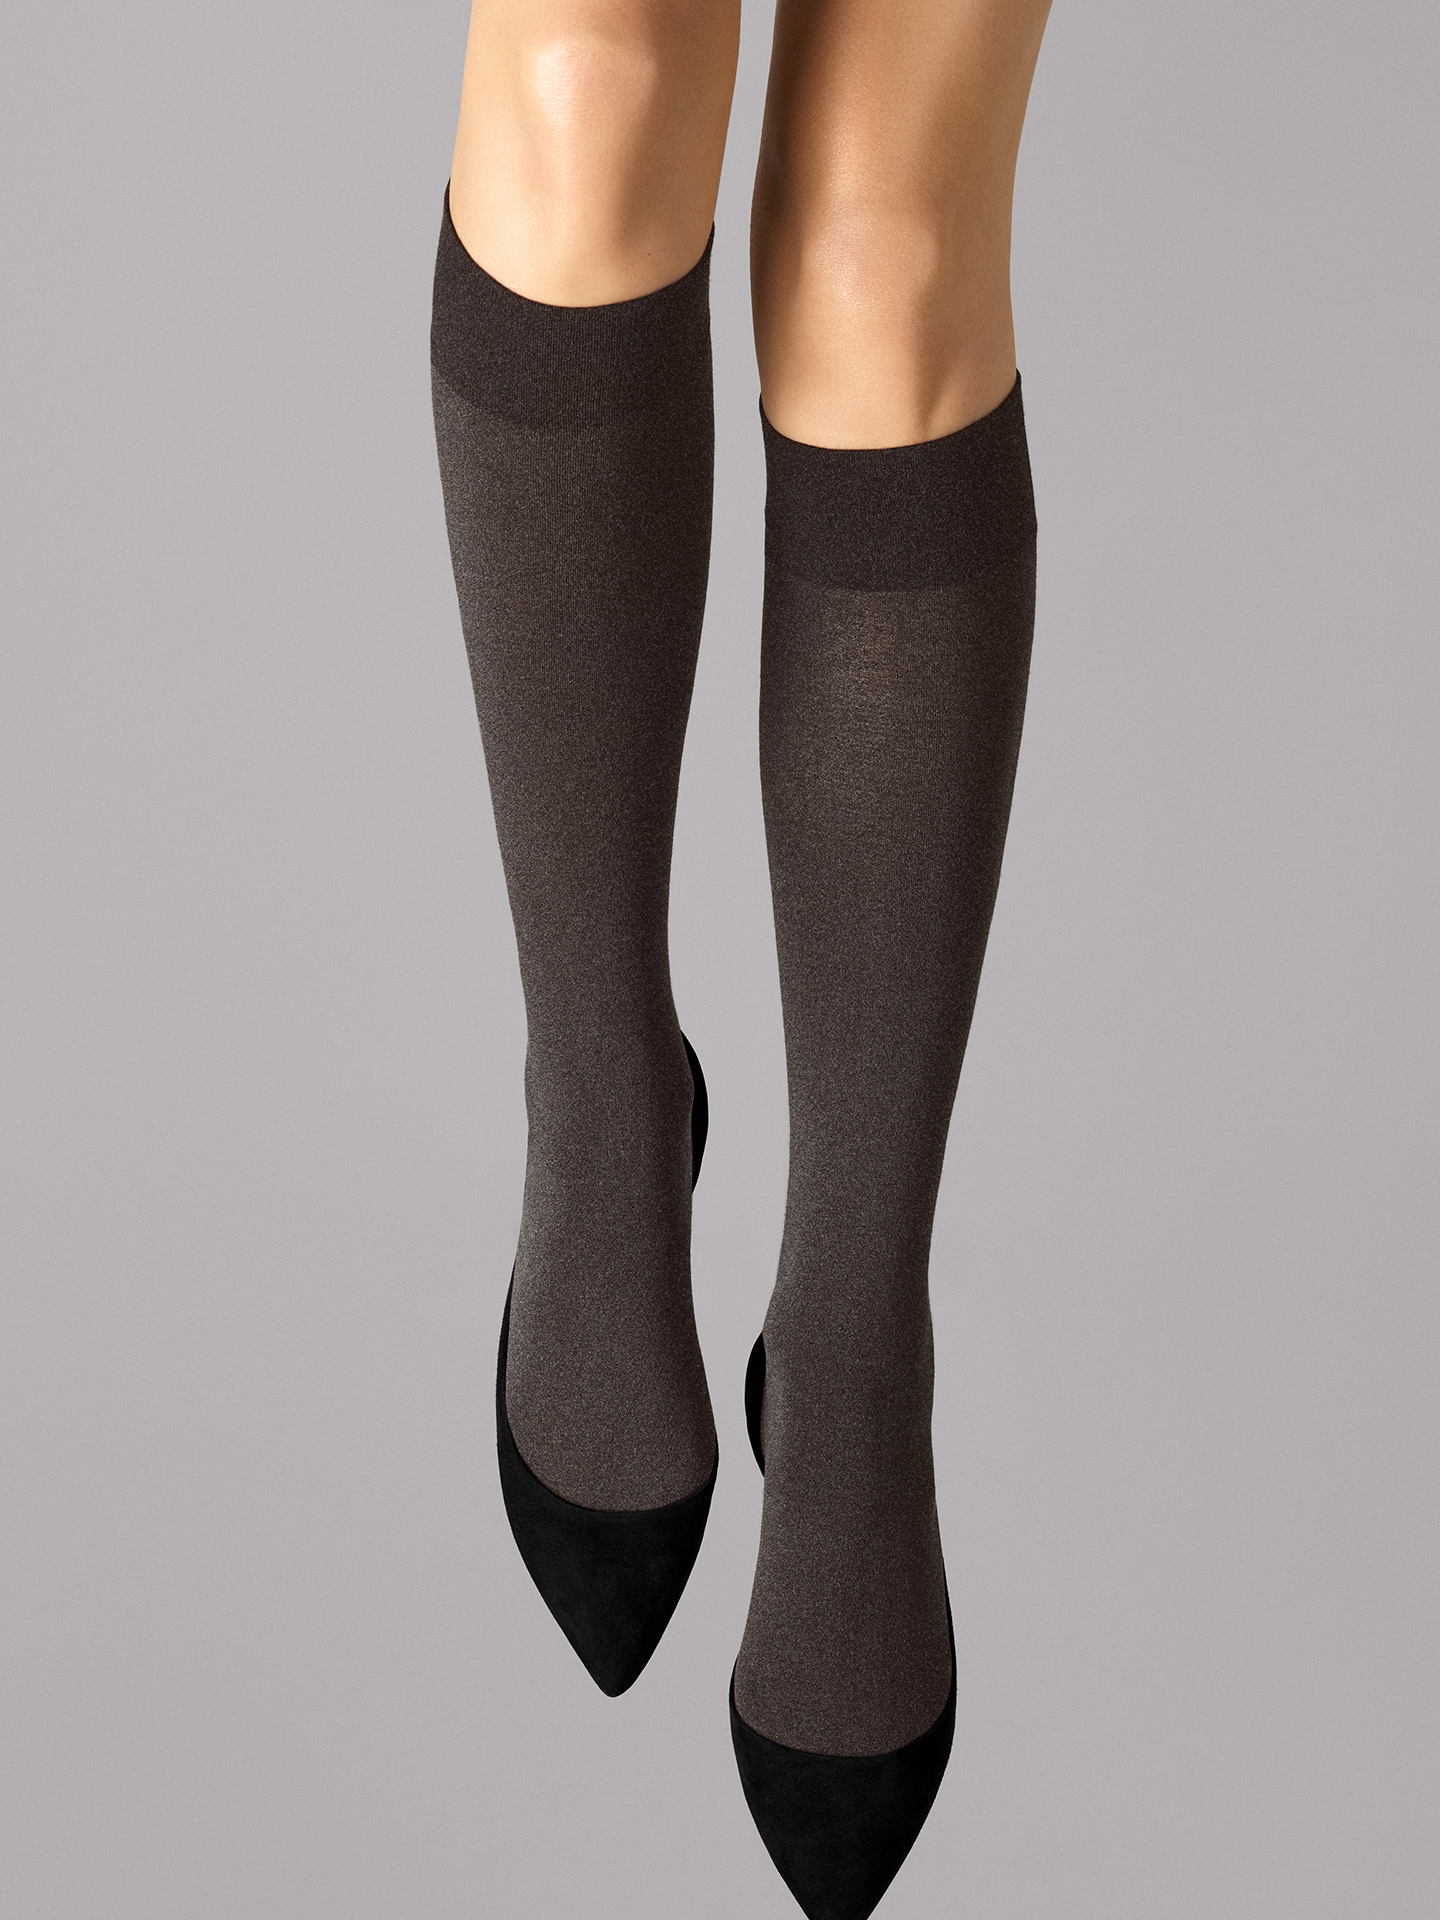 Wolford Apparel & Accessories > Clothing > Gambaletti Cotton Velvet Knee-Highs - 9274 - M